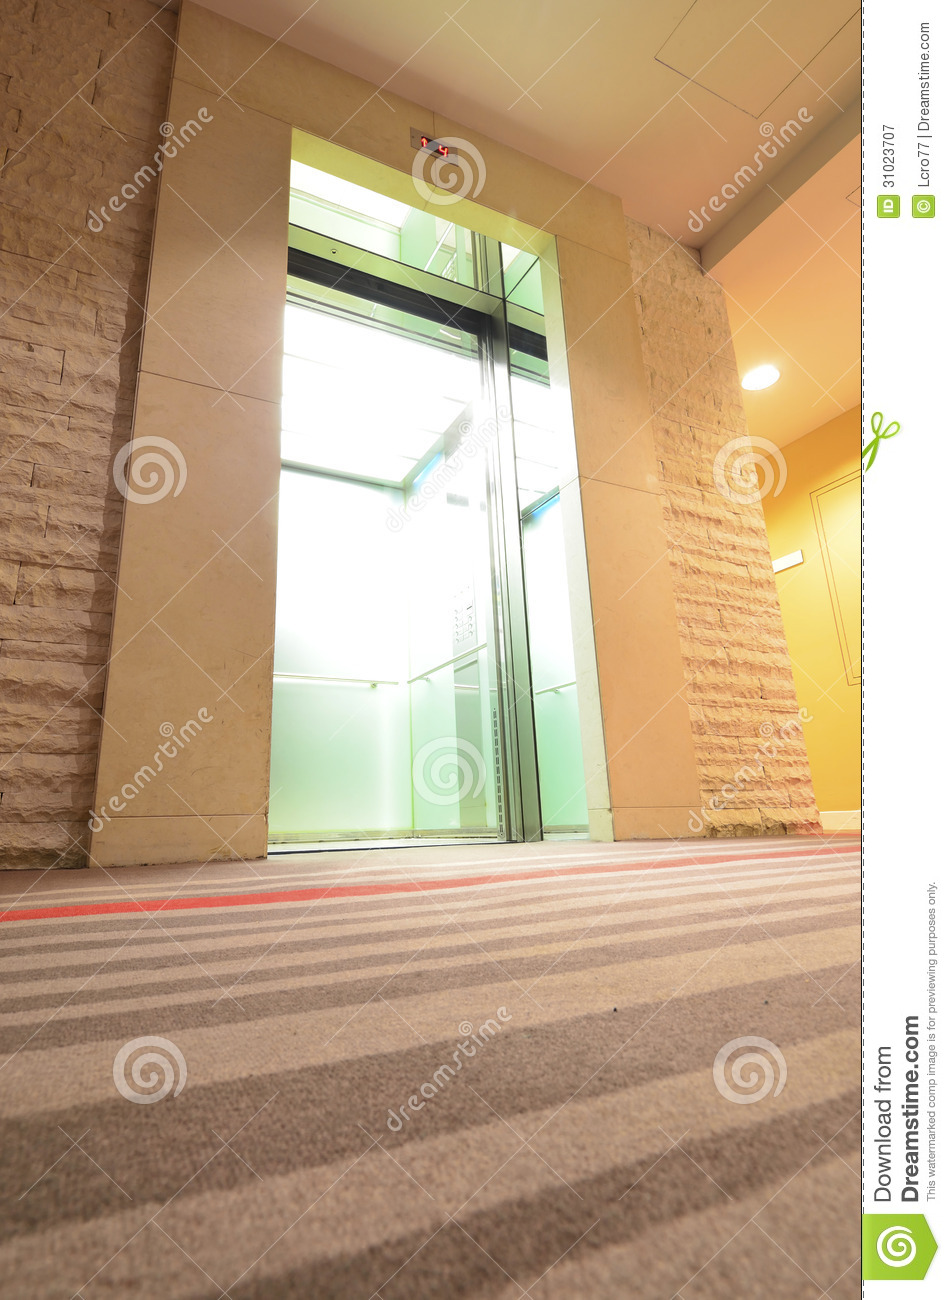 Inside Hotel Room Door: Empty Modern Elevator With Open Doors Royalty Free Stock